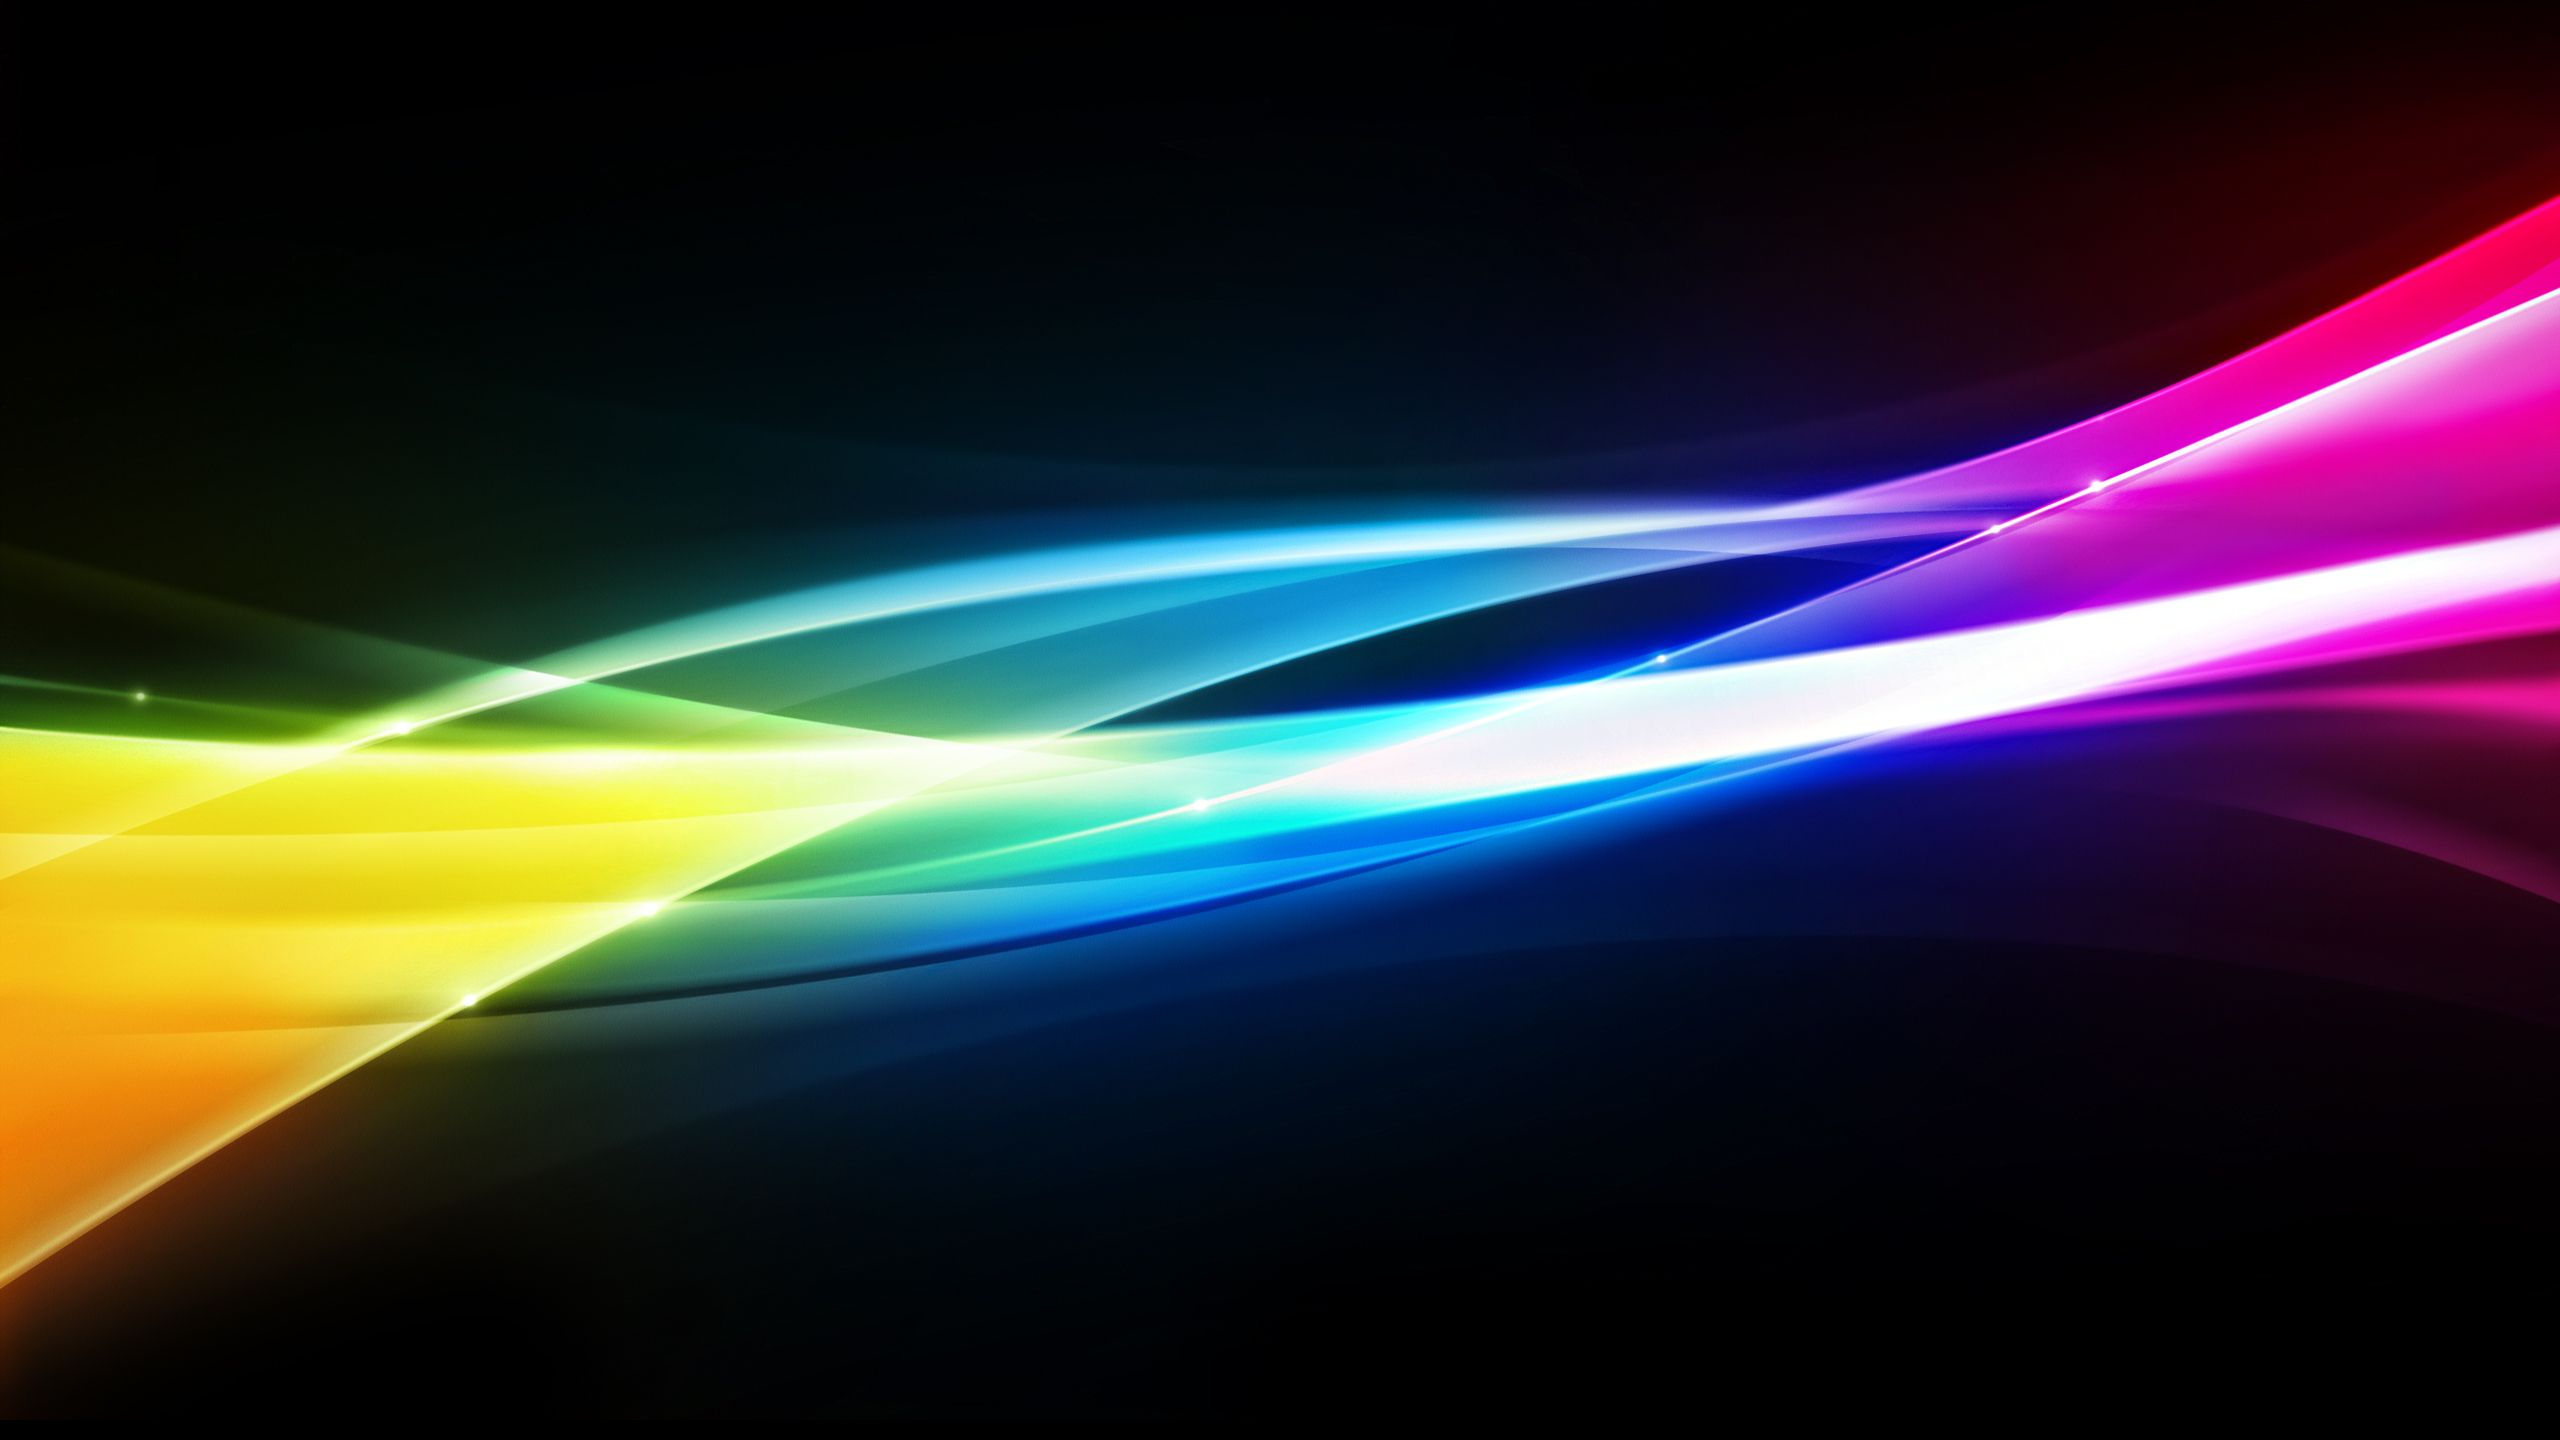 Animated Wallpapers for iPad